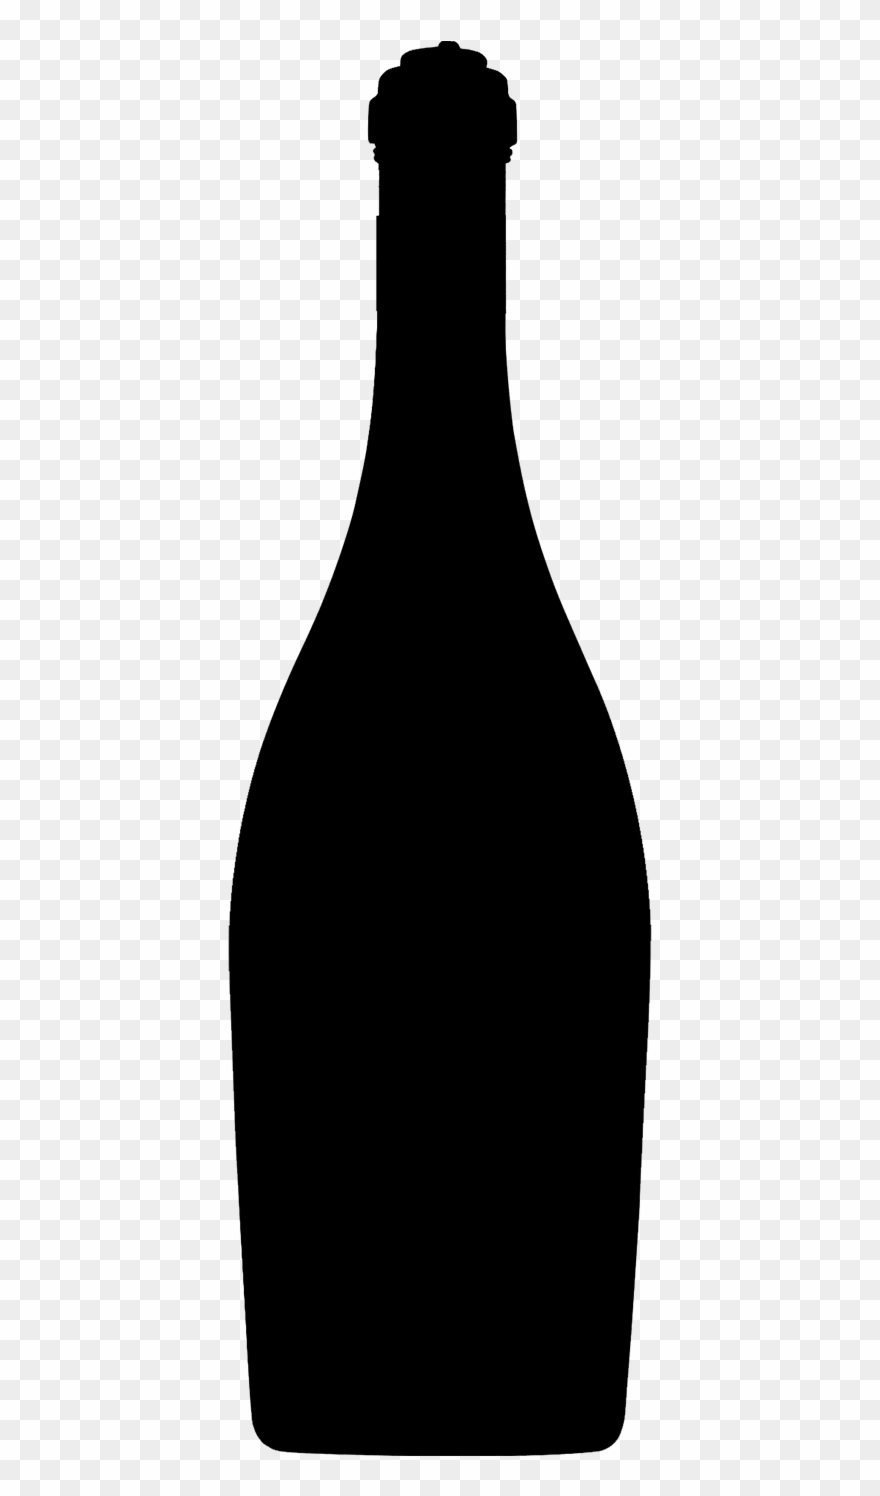 Champagne silhouette clipart image transparent library Champagne Silhouette Png - Glass Bottle Clipart (#3646090) - PinClipart image transparent library